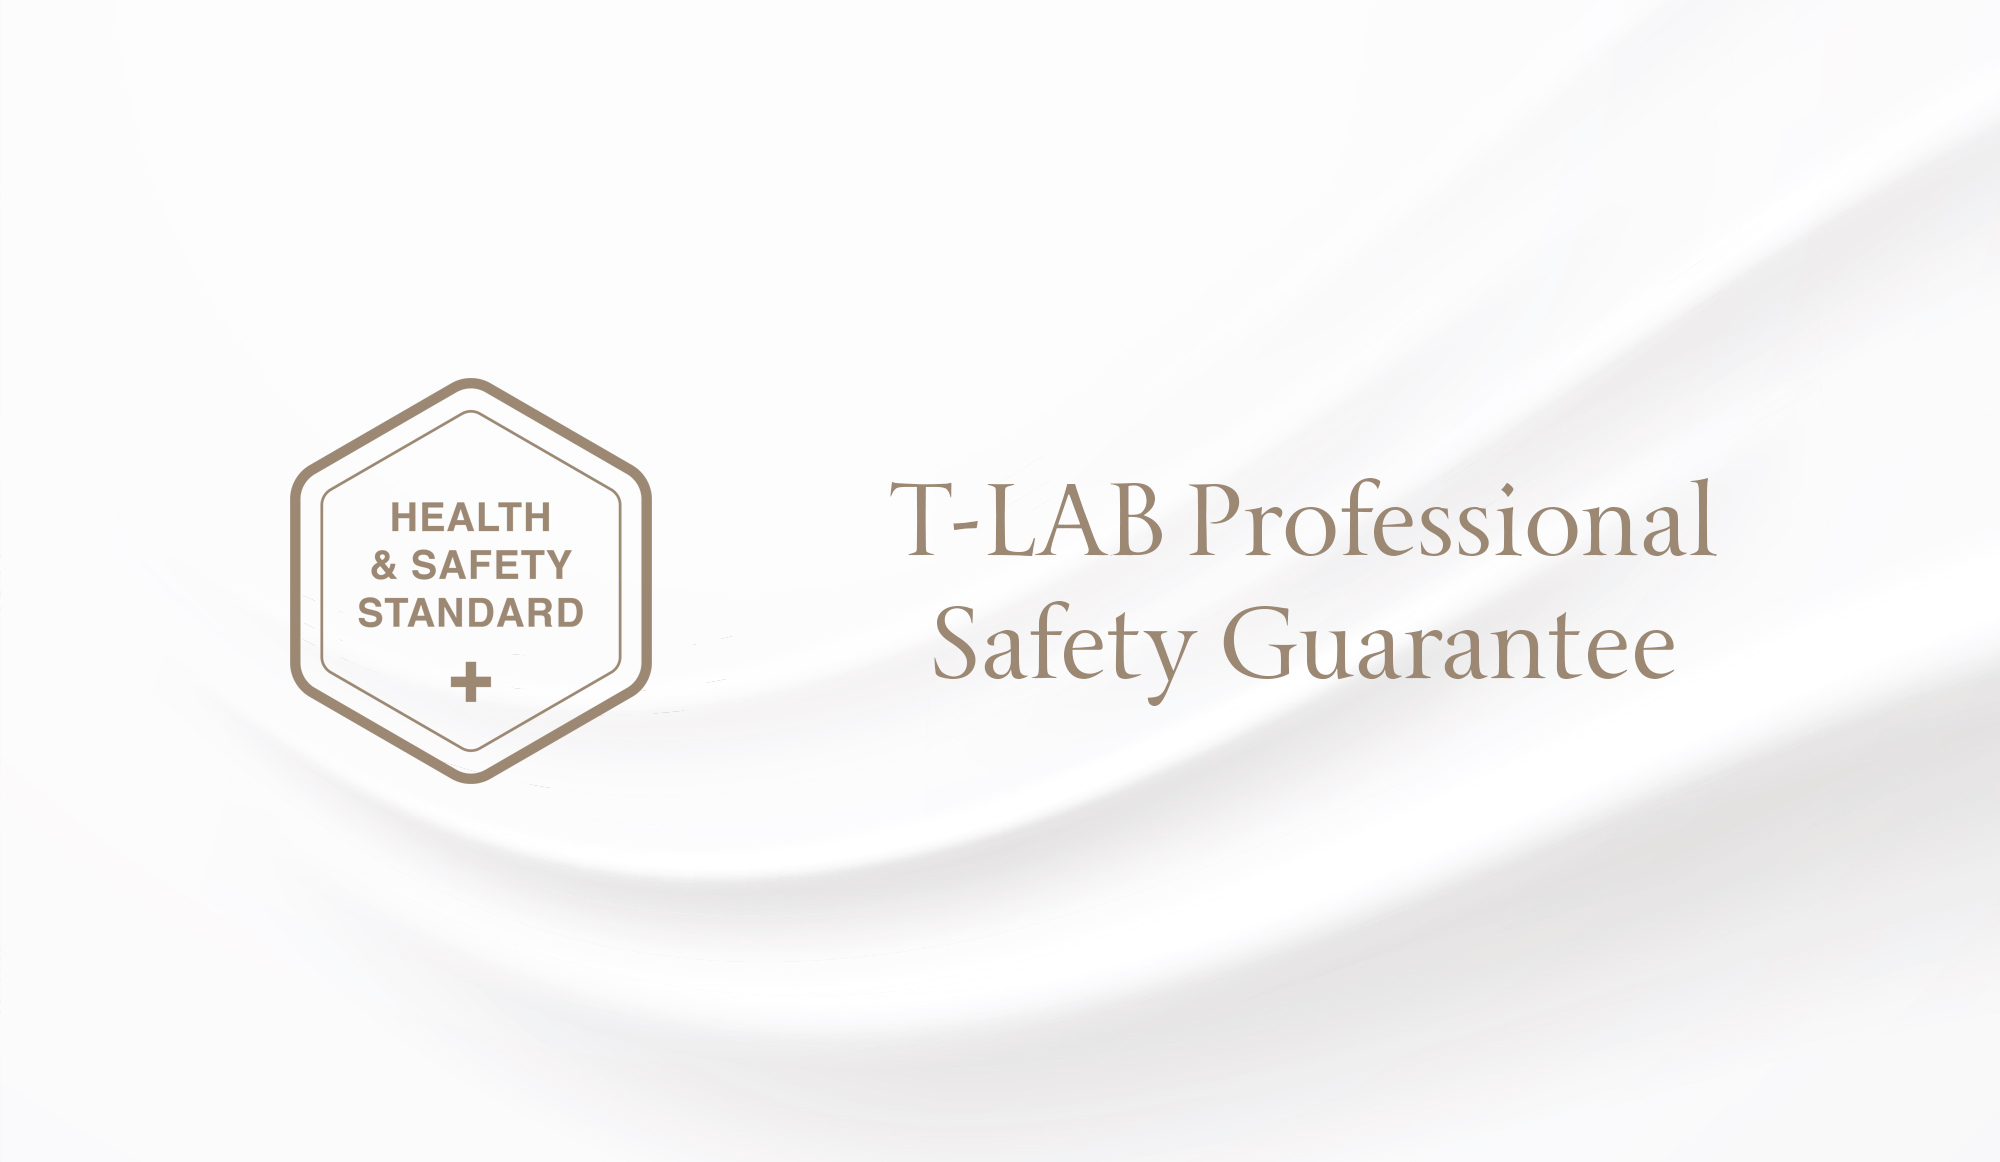 T-LAB Professional Safety Guarantee